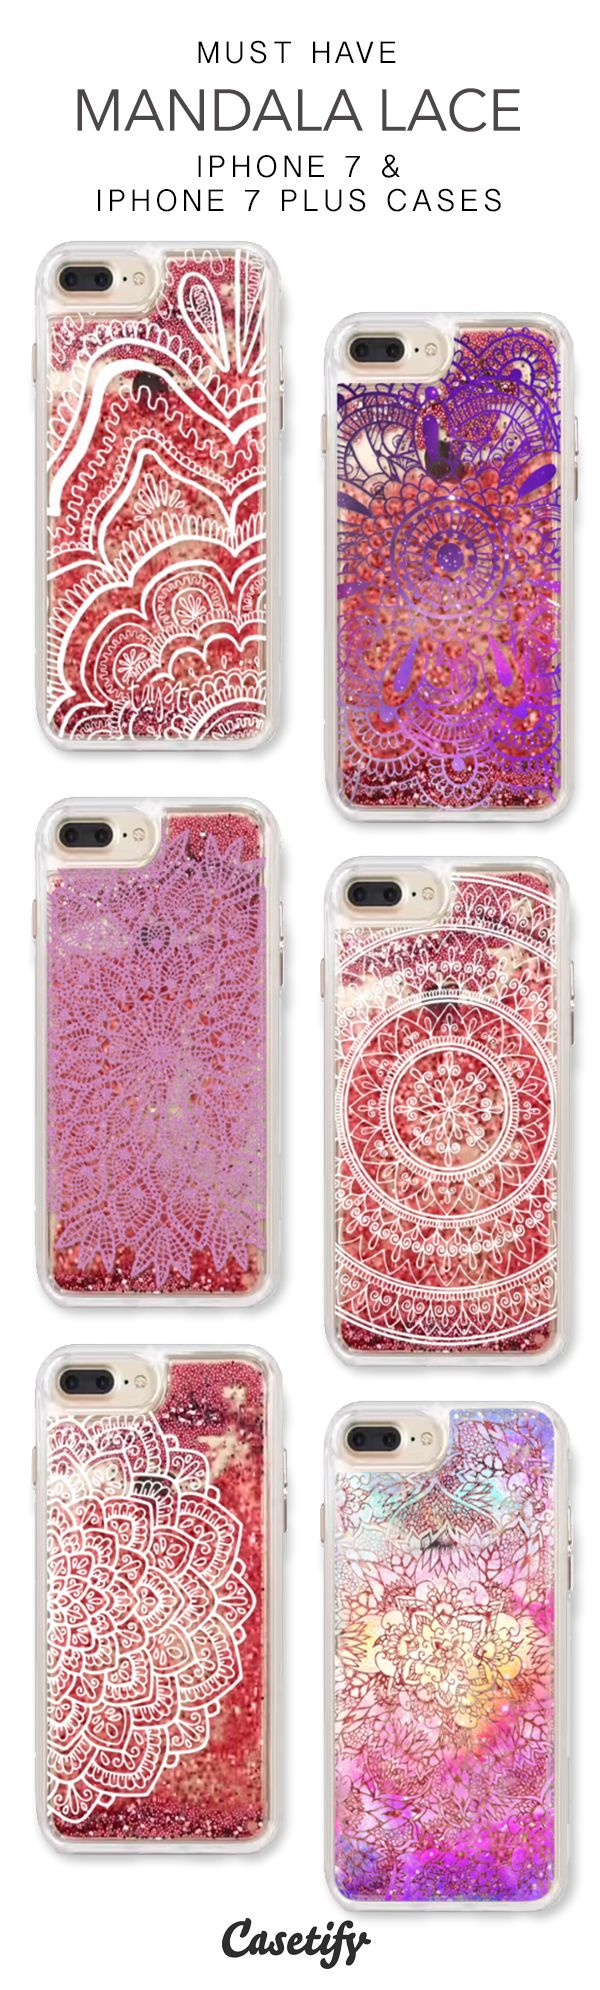 Must Have Mandala Lace iPhone 7 Cases & iPhone 7 Plus Cases. More liquid glitter iPhone case here > https://www.casetify.com/en_US/collections/iphone-7-glitter-cases#/?vc=KNDSHcWHPL